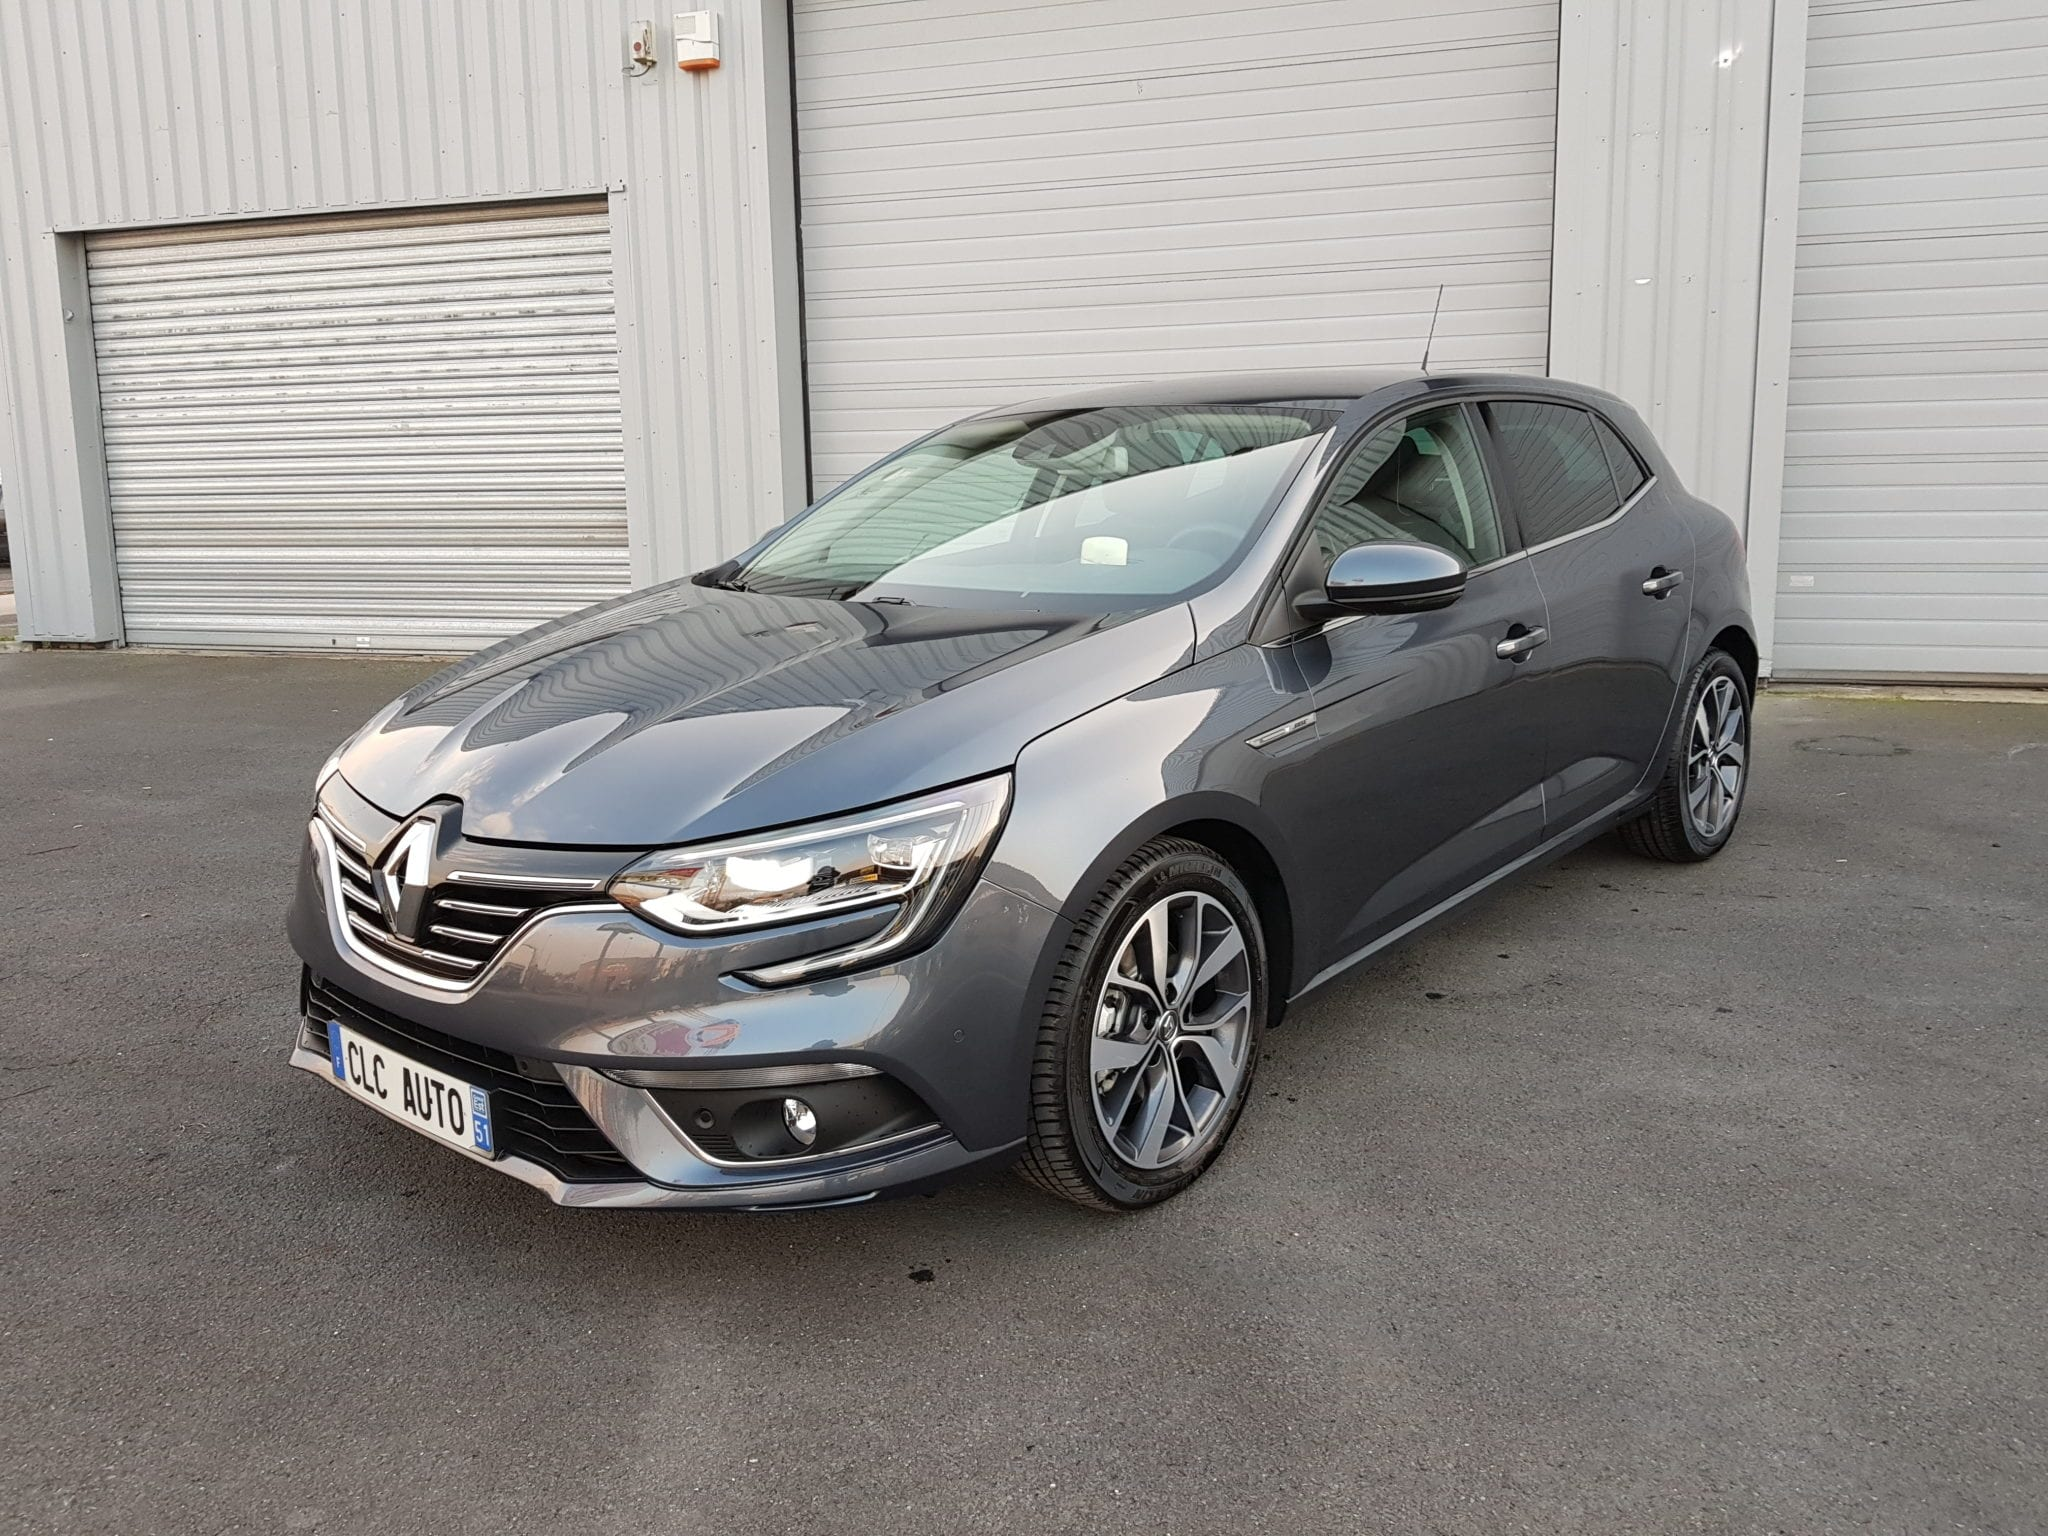 Renault MEGANE 4 BOSE EDITION ENERGY 1.6 DCI 130 - Image 1